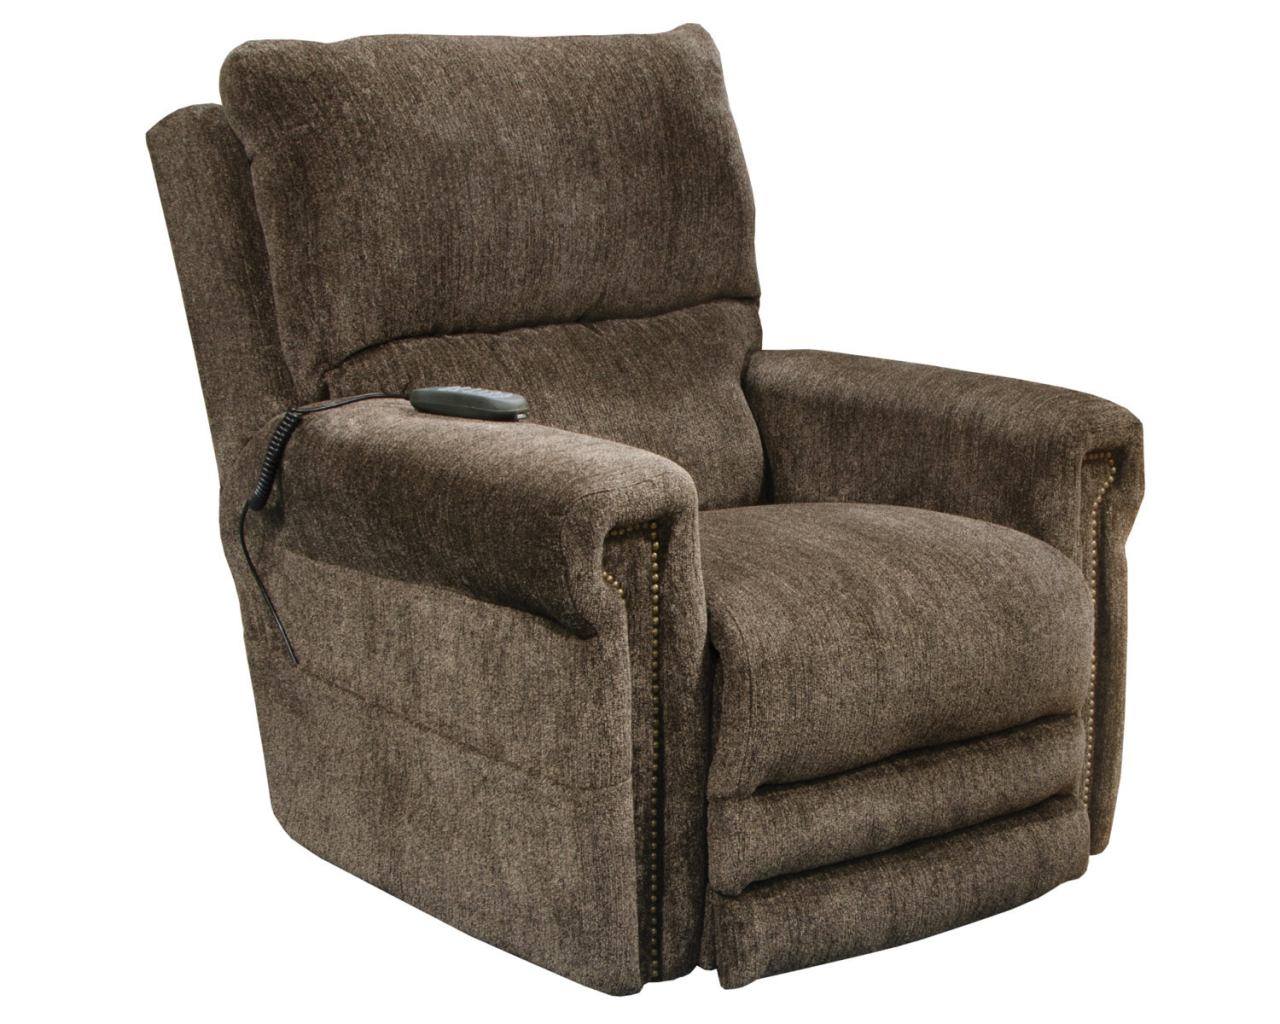 Catnapper Warner Power Lift Recliner w/ Dual Motor & Extended Ottoman in Tiger`s 64862 CODE:UNIV20 for 20% Off